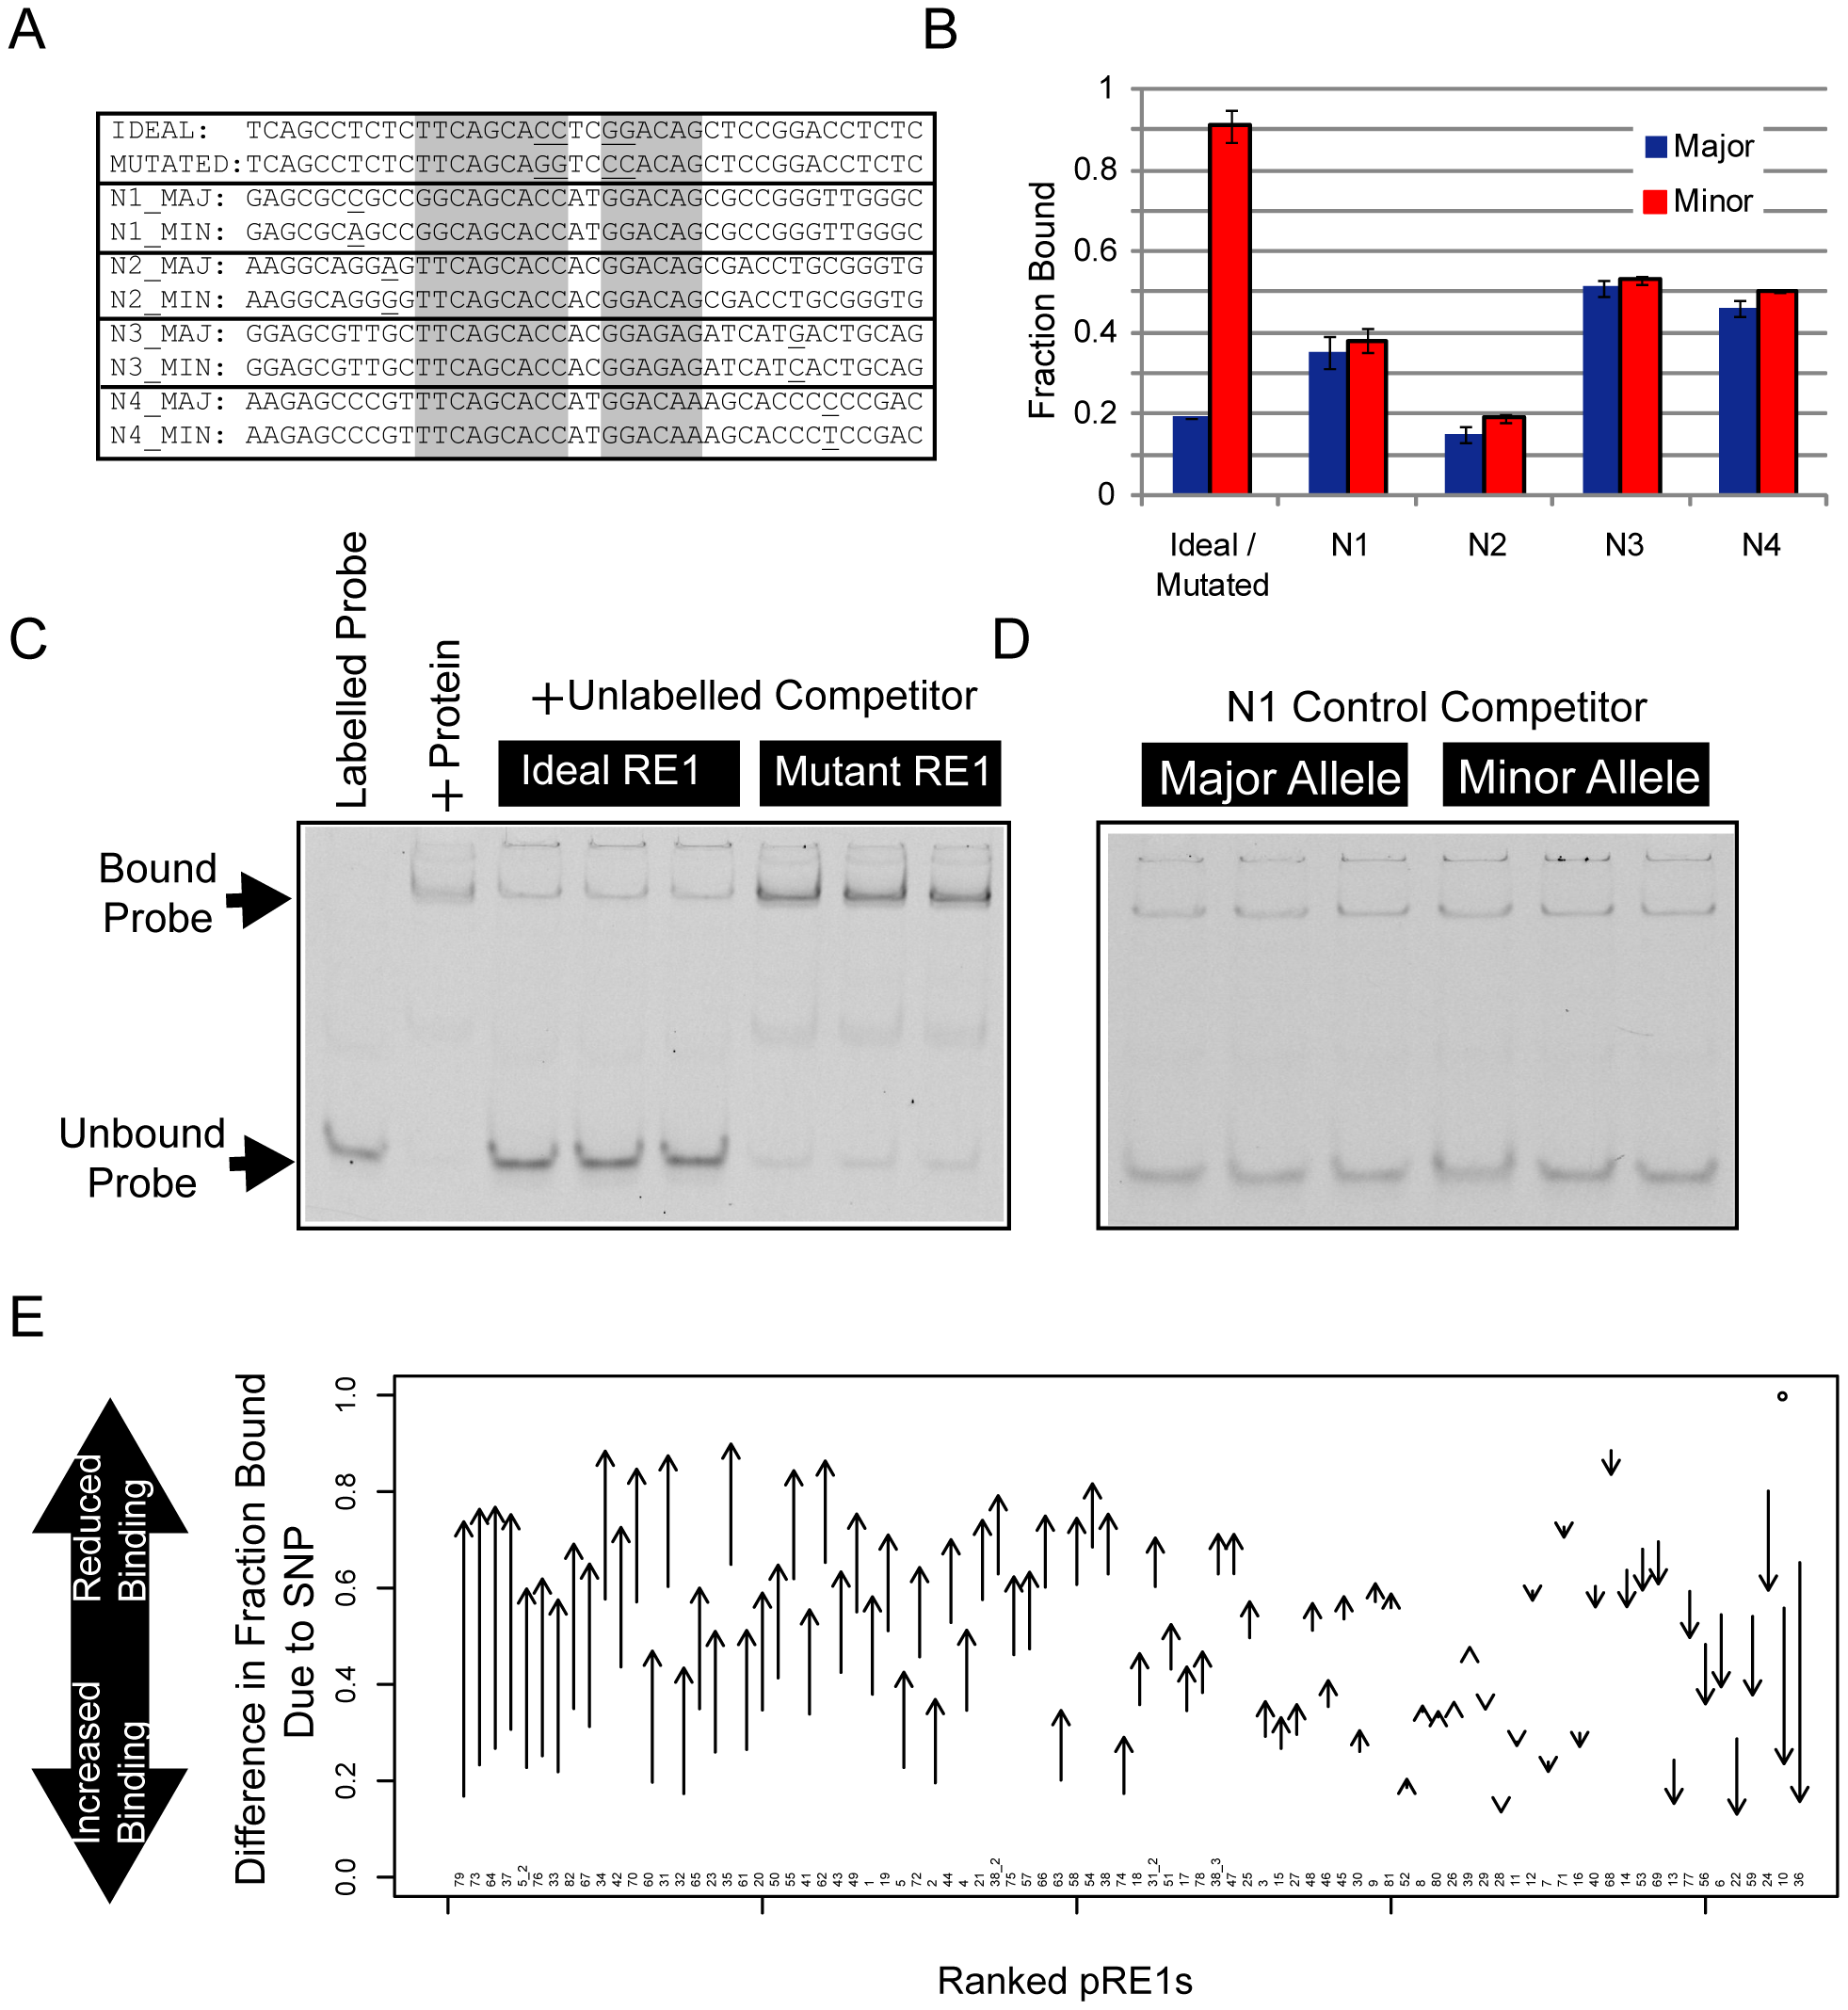 Electrophoretic mobility shift assay to measure affinity differences between RE1 alleles.